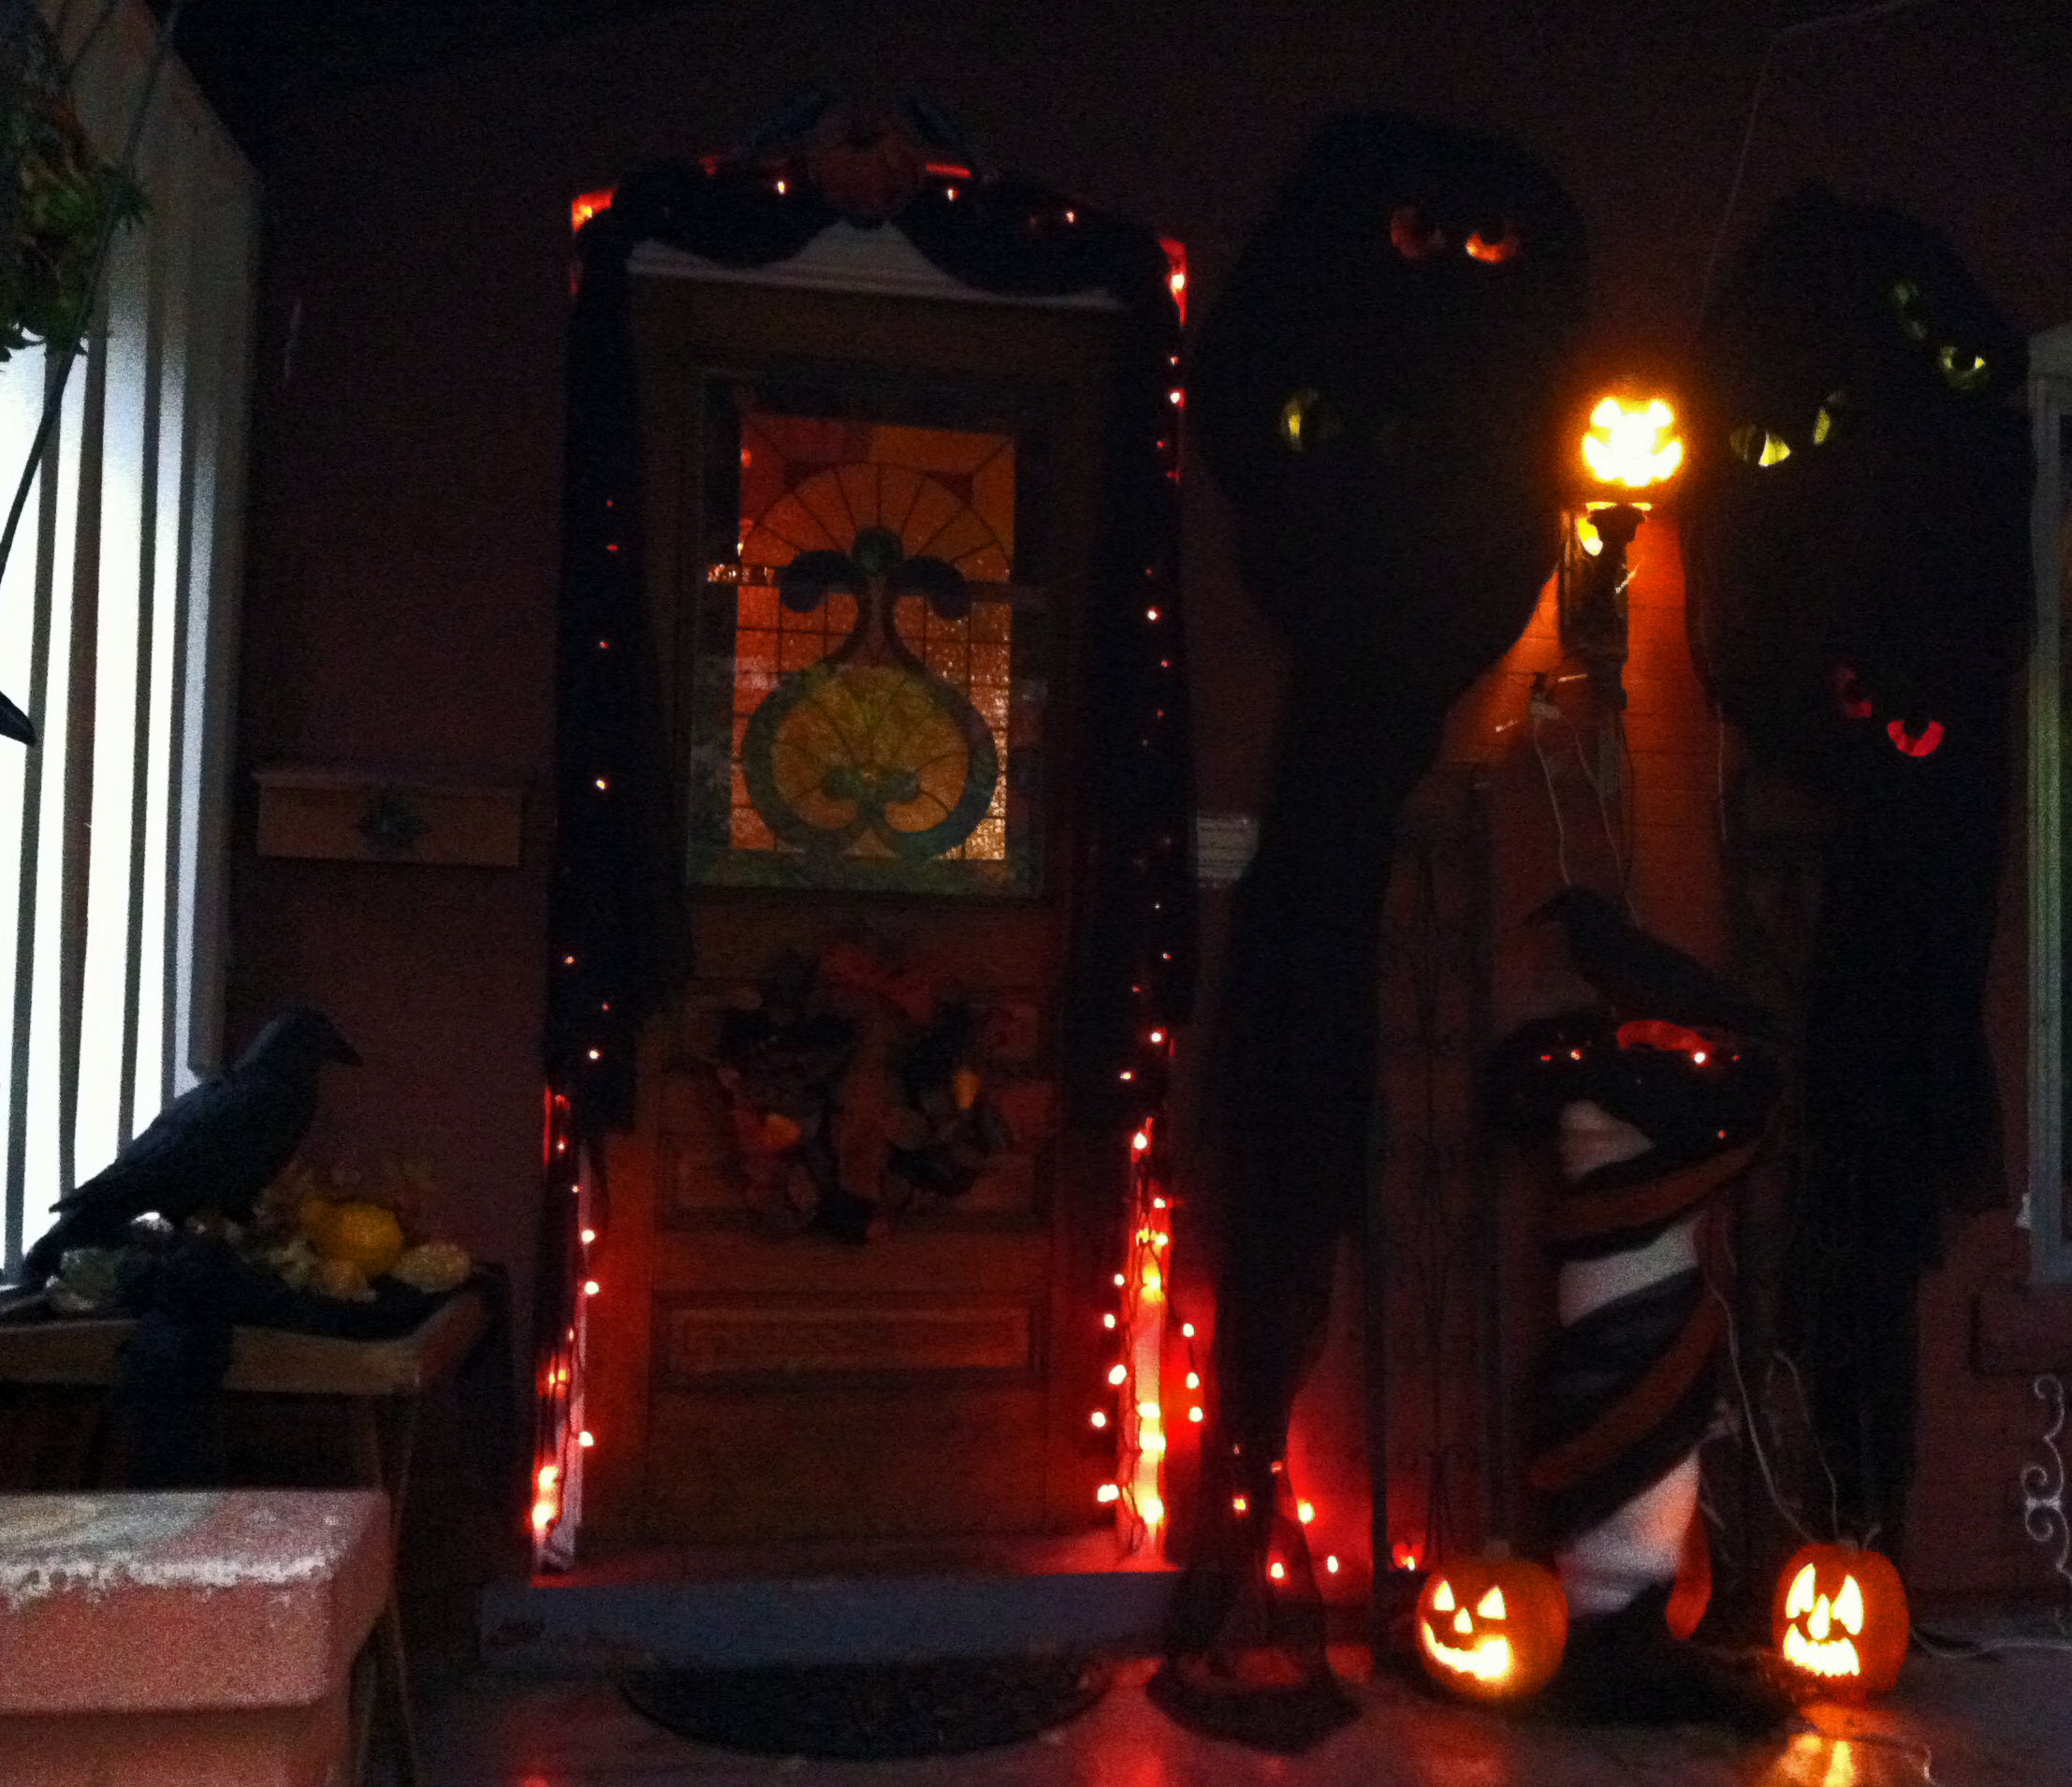 Porch Light Denver: The Eyes Have It…Spooky Halloween Goodness That Is. A Cool